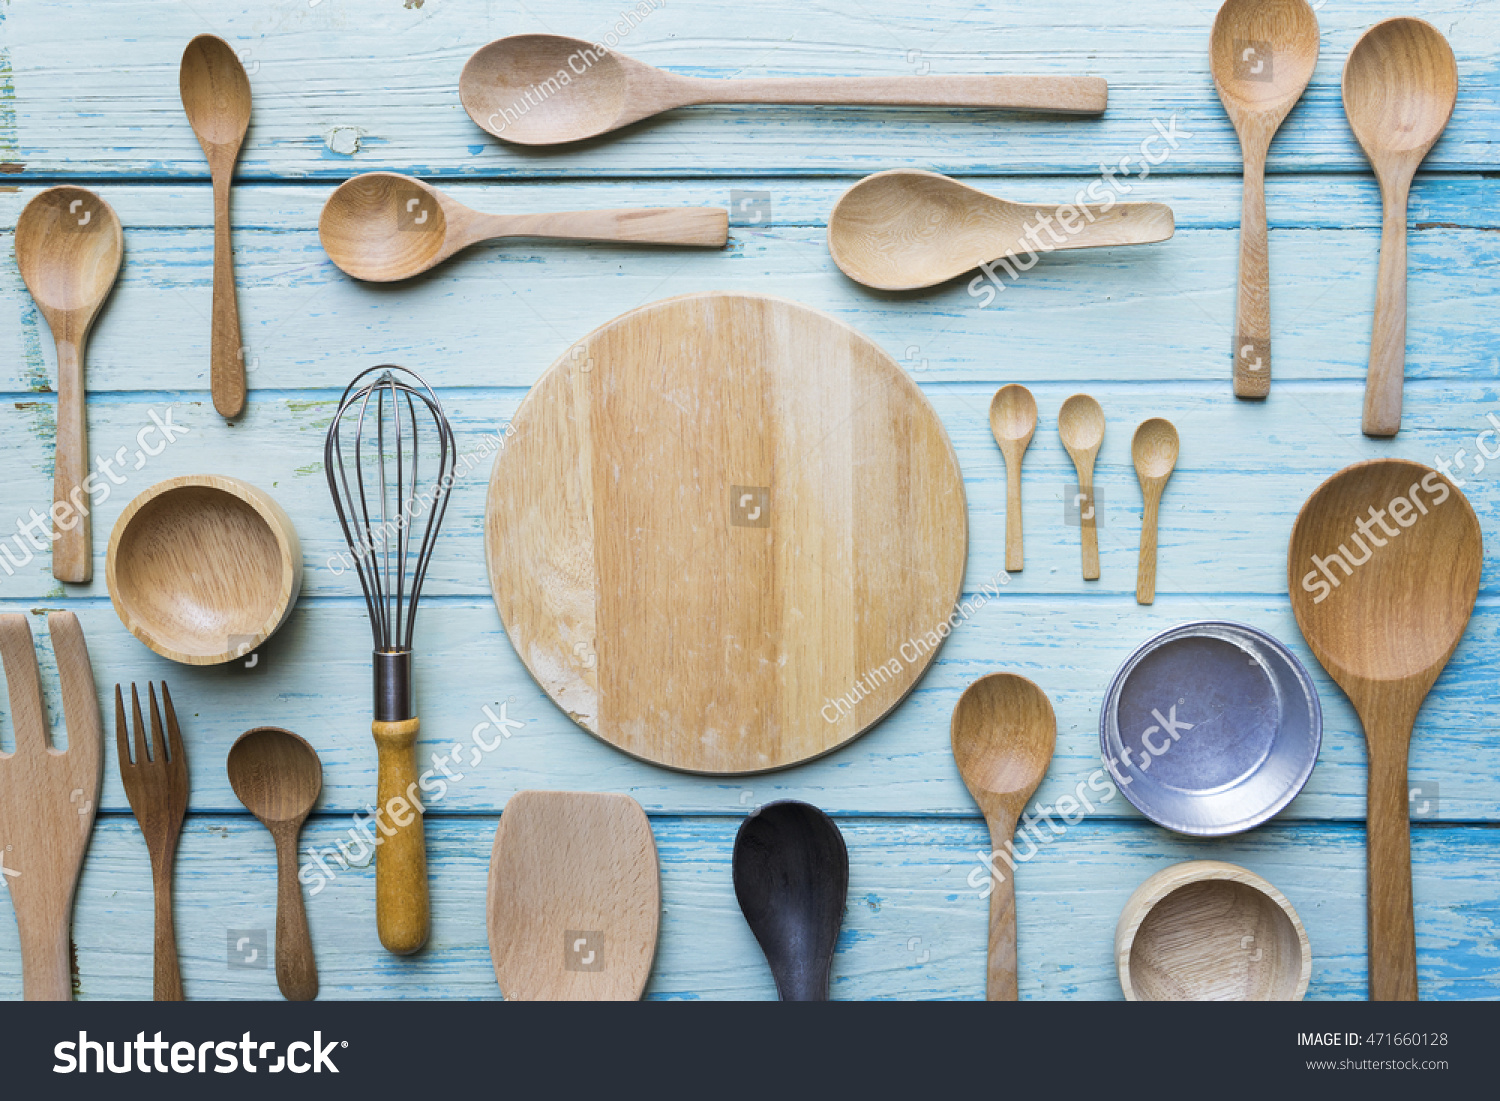 Various Kitchen Utensils On Wooden Table Stock Photo (Royalty Free ...